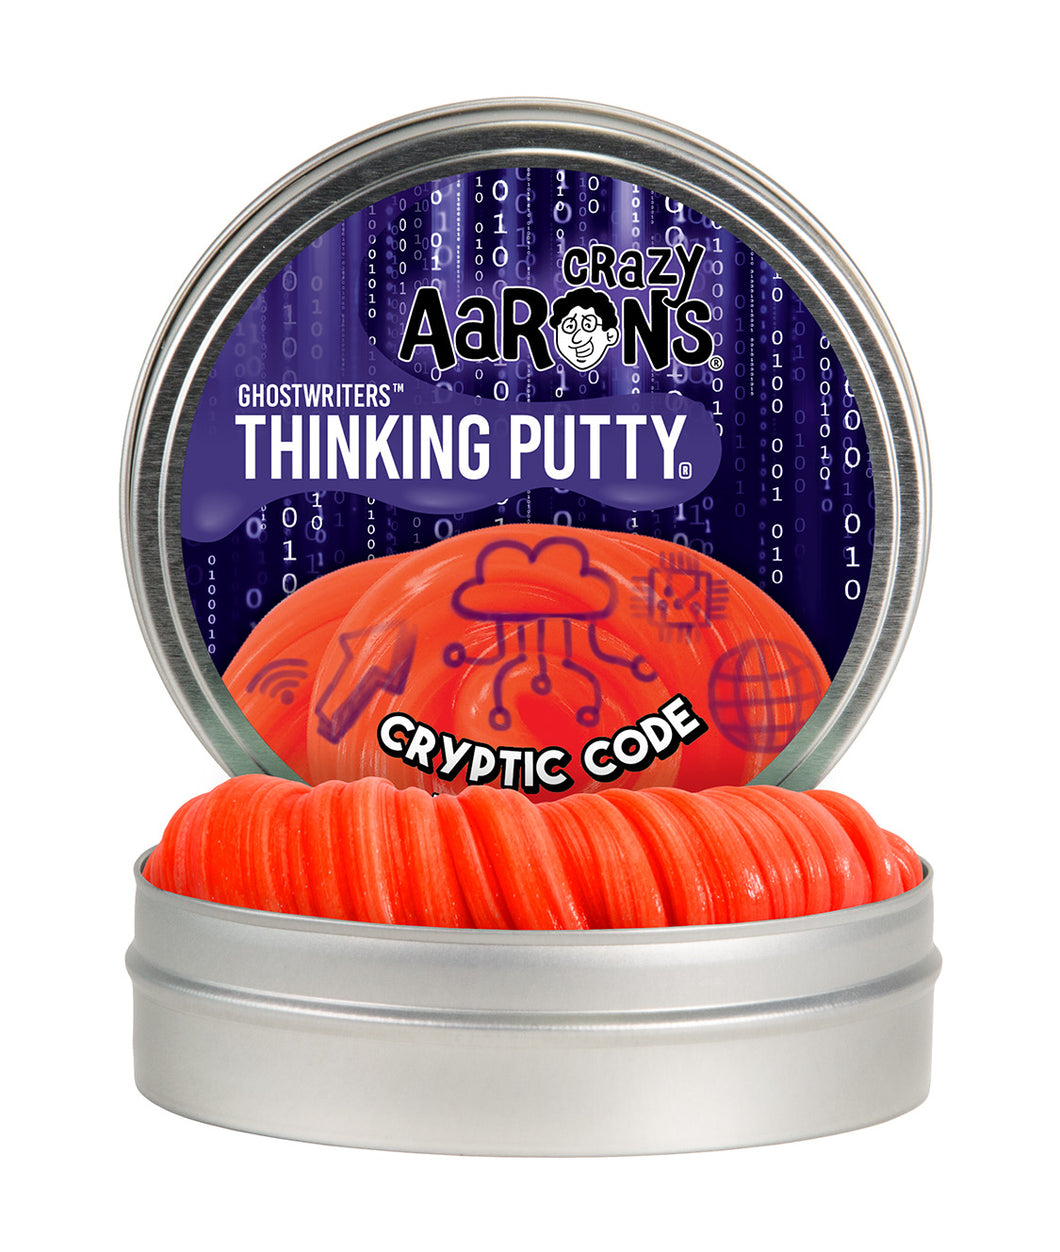 Crazy Aaron's Thinking Putty - Ghostwriters - Cryptic Code